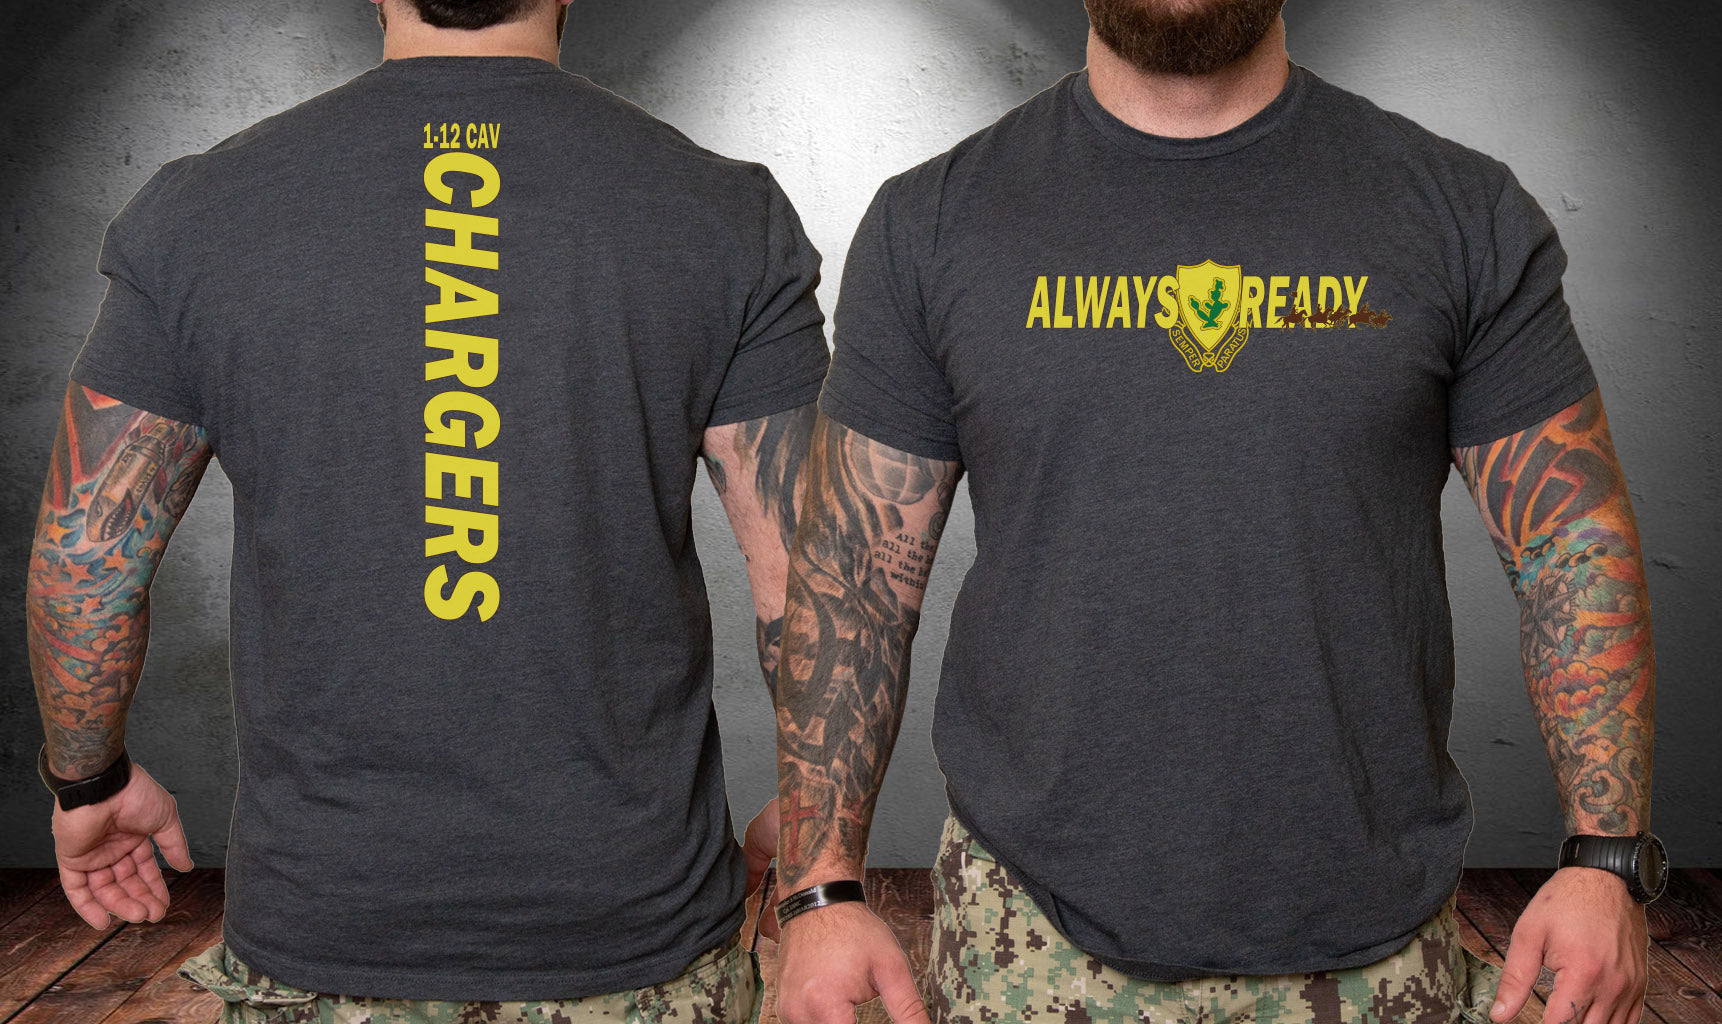 1-12 Cav Chargers Pride Shirt